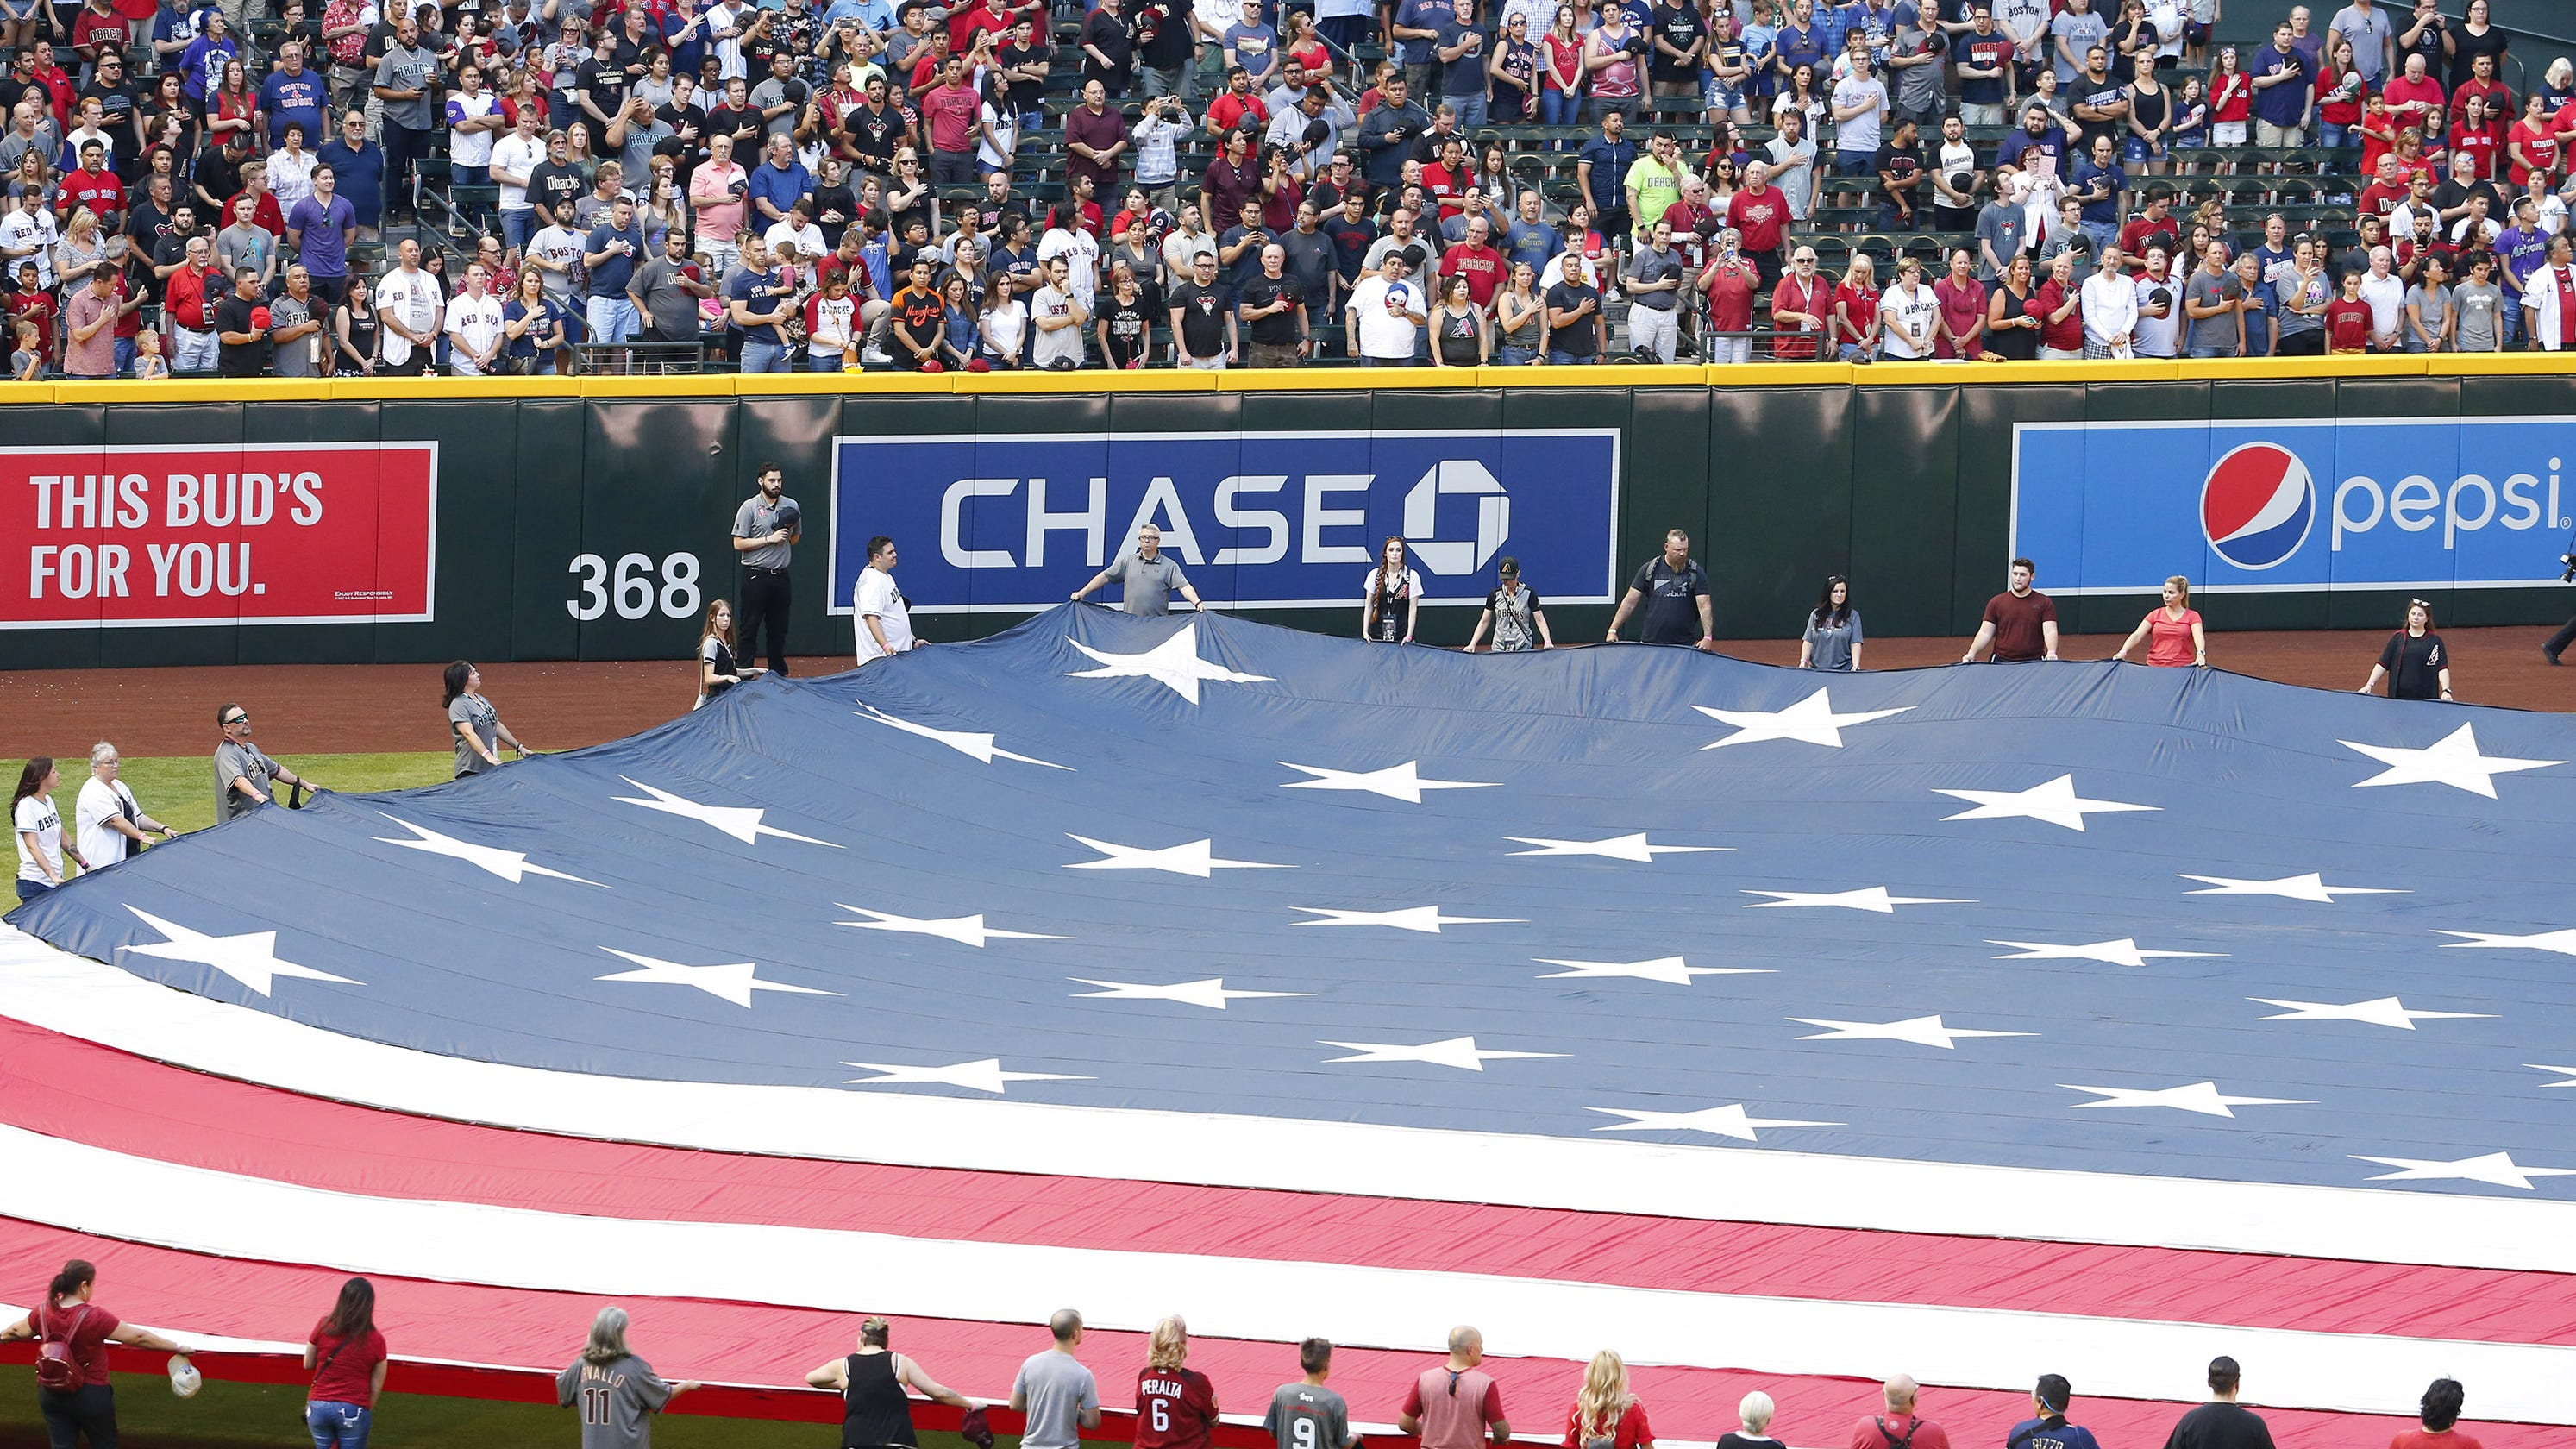 Chase Cash Back Calendar 2020 Arizona Diamondbacks' 2020 schedule: Calendar for MLB regular season